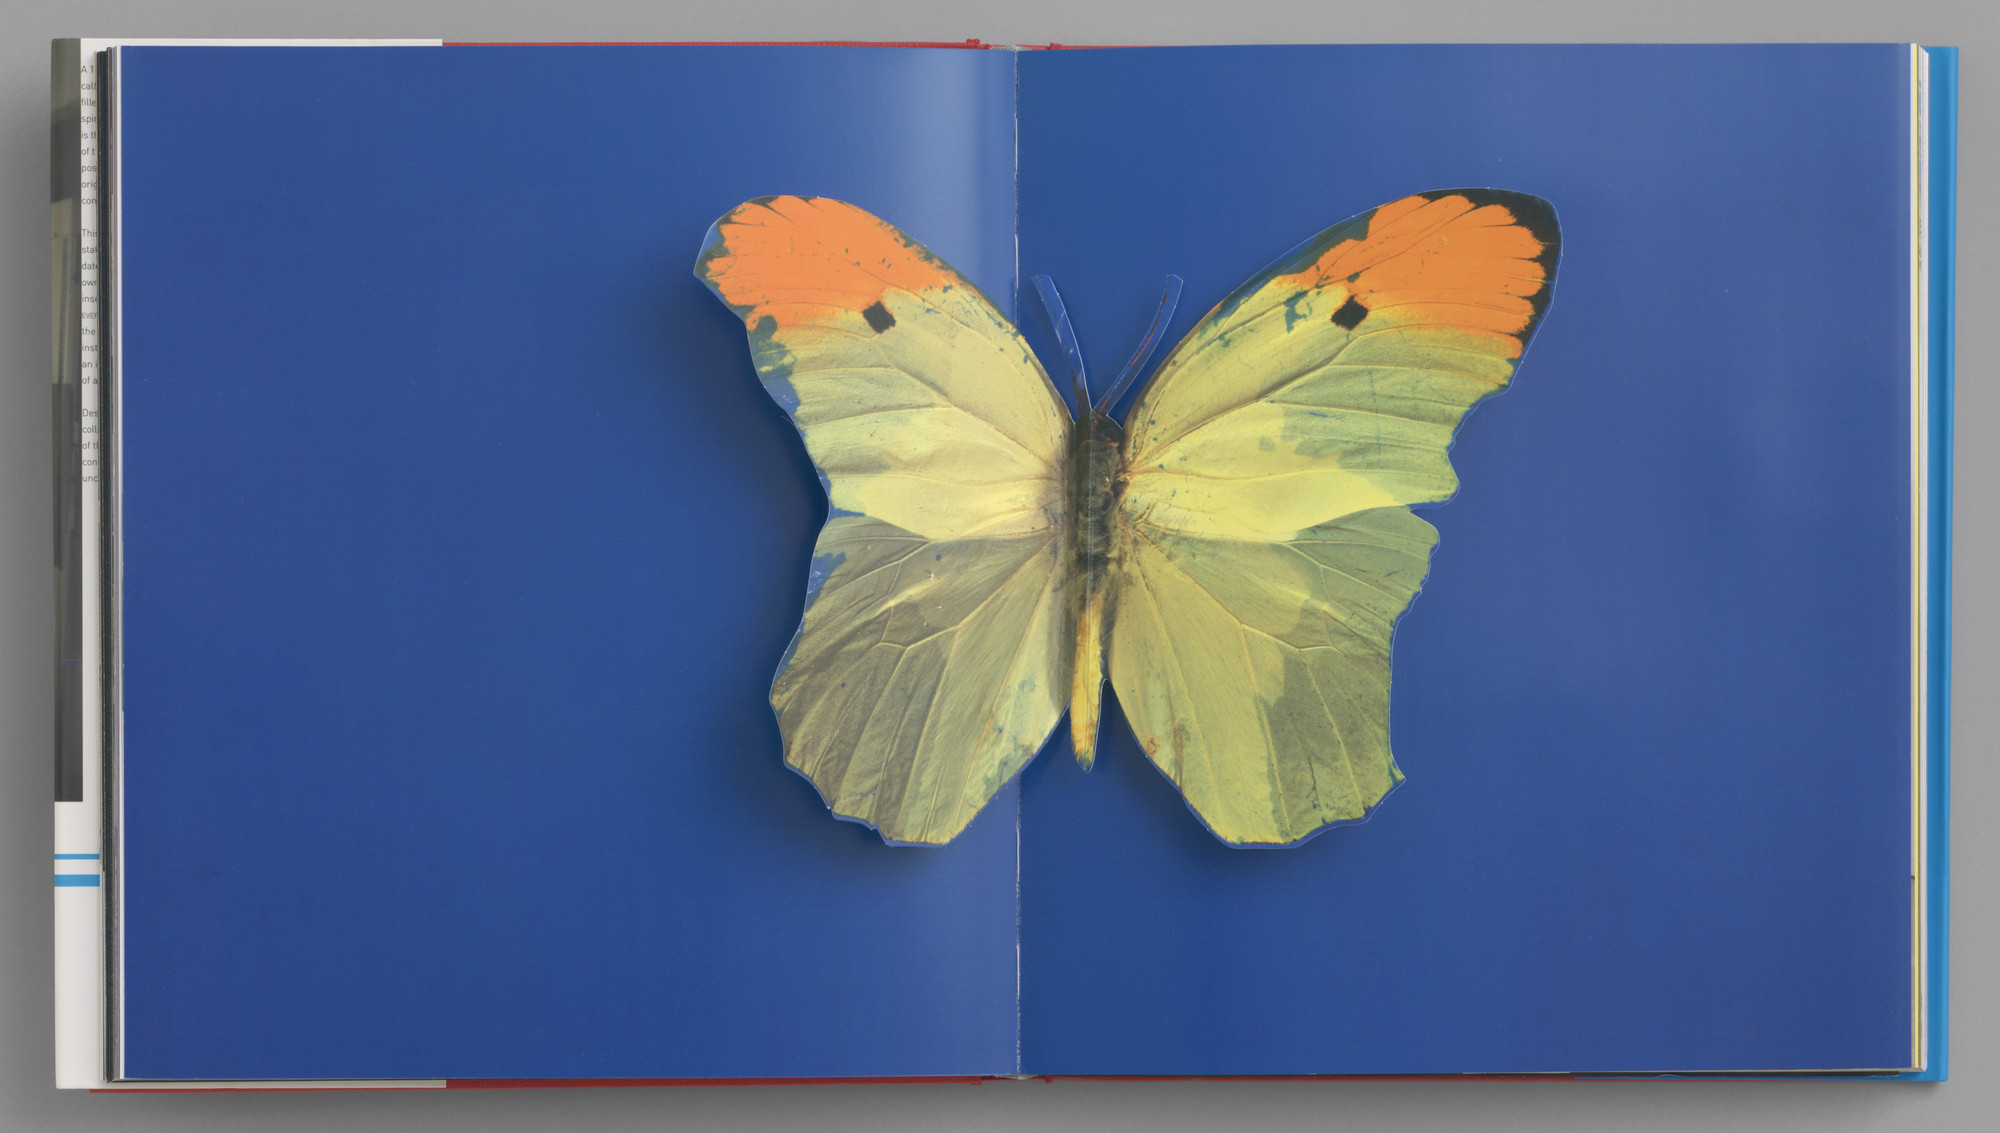 Damien Hirst. I Want to Spend the Rest of My Life Everywhere, with Everyone, One to One, Always, Forever, Now. 1998 (first edition 1997)